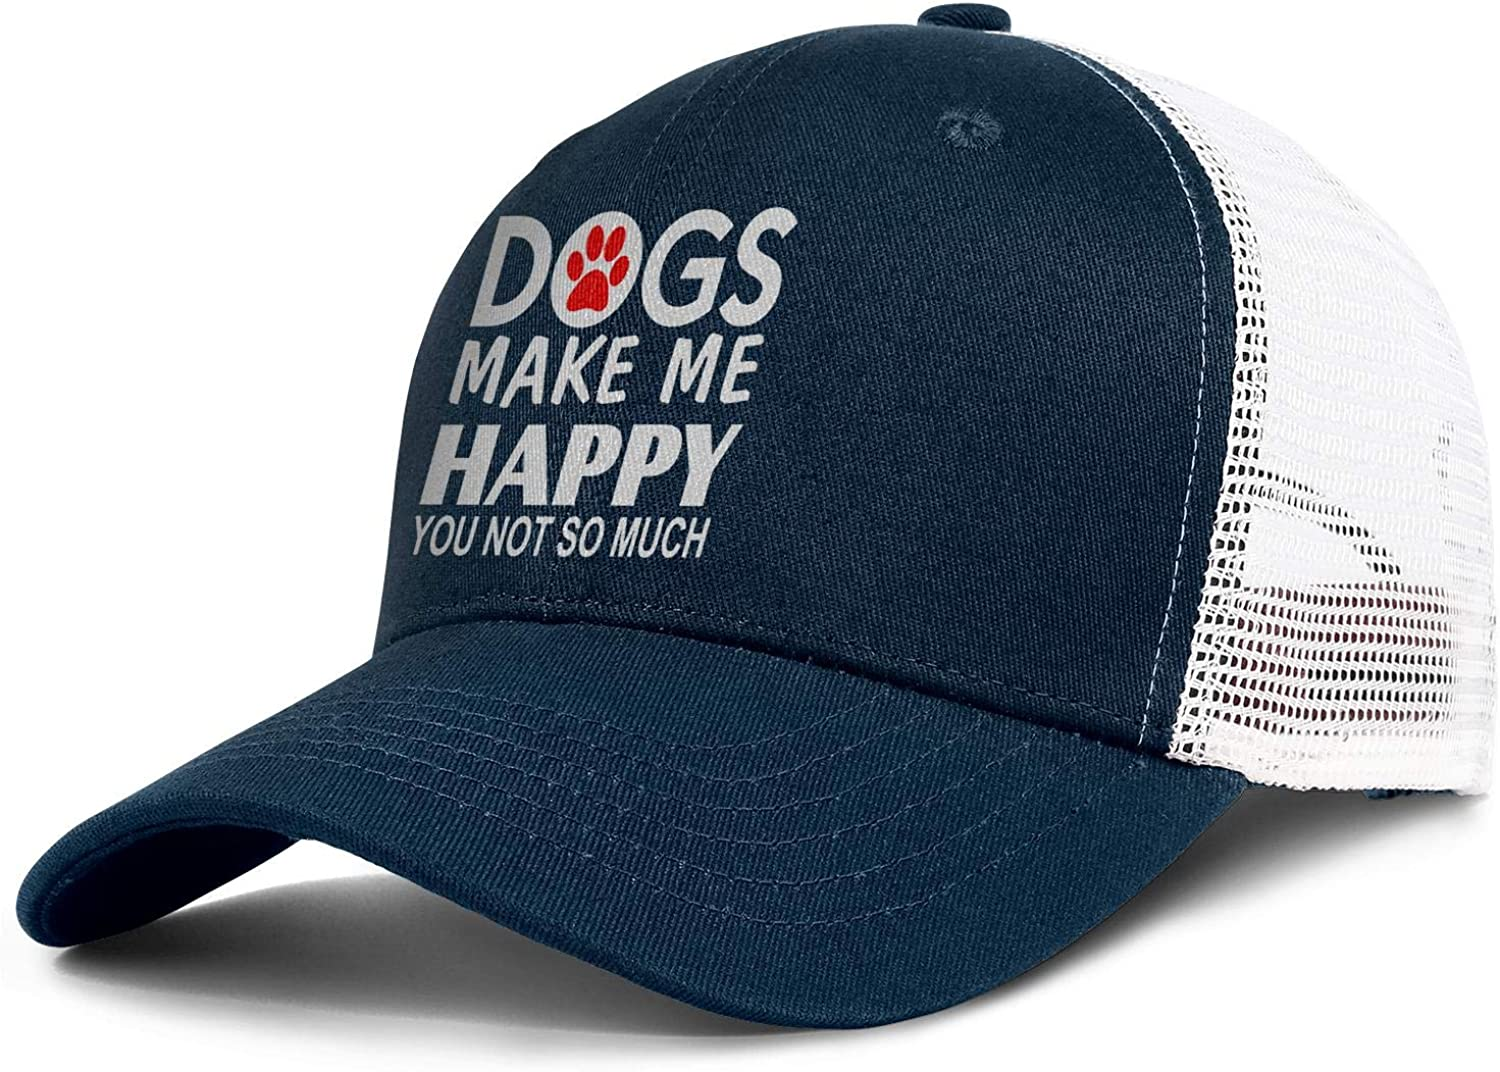 Trucks Make Me Happy Outdoor Snapback Sandwich Cap Adjustable Baseball Hat Trucker Cap